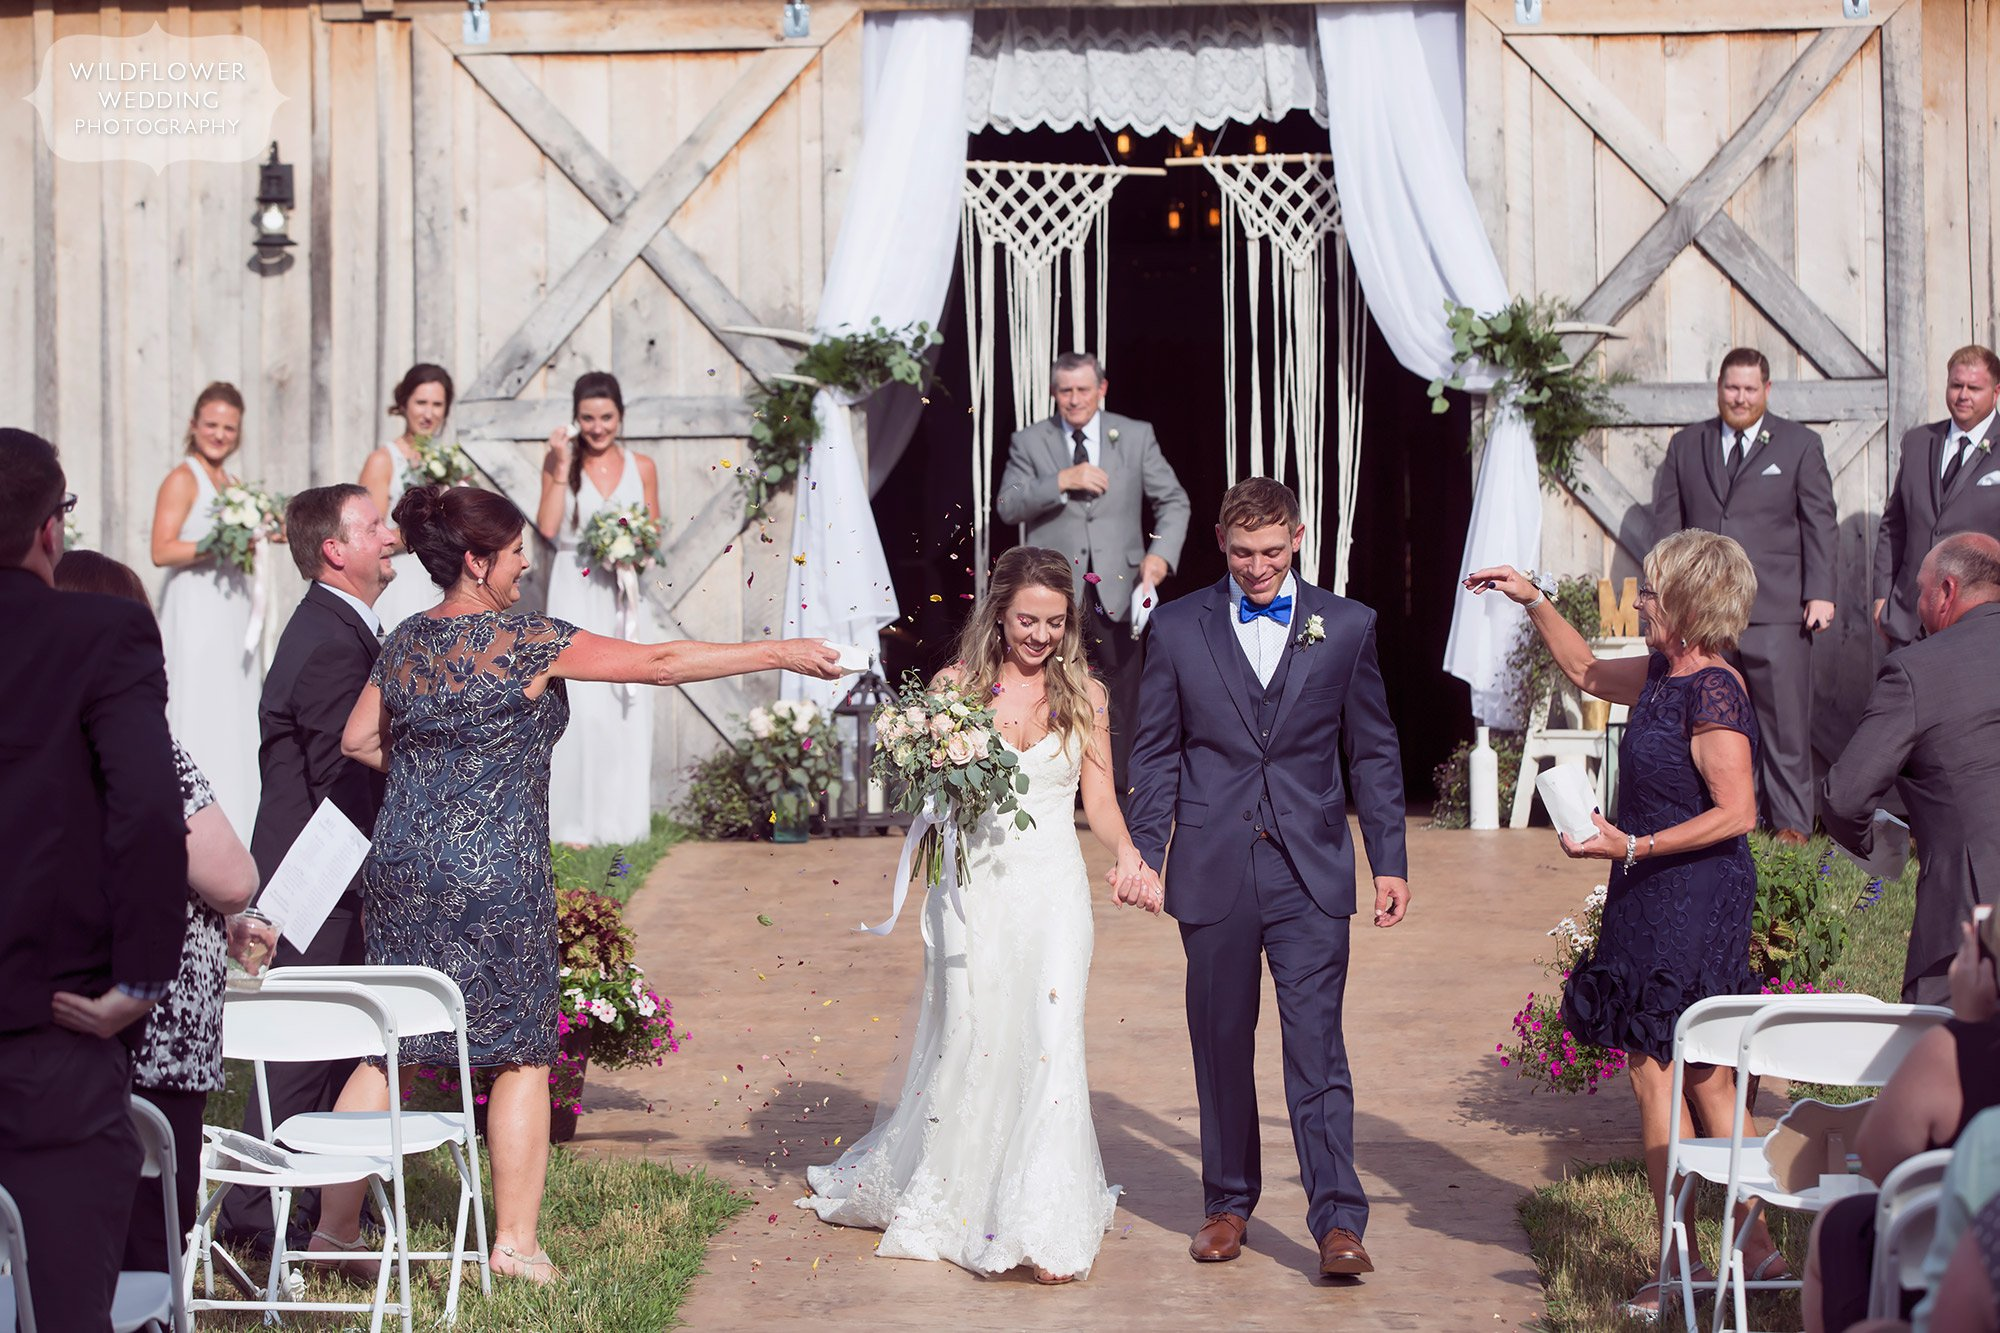 The bride and groom have a colorful wedding ceremony exit walk as the guests throw dried wildflower petals at them at this barn wedding.